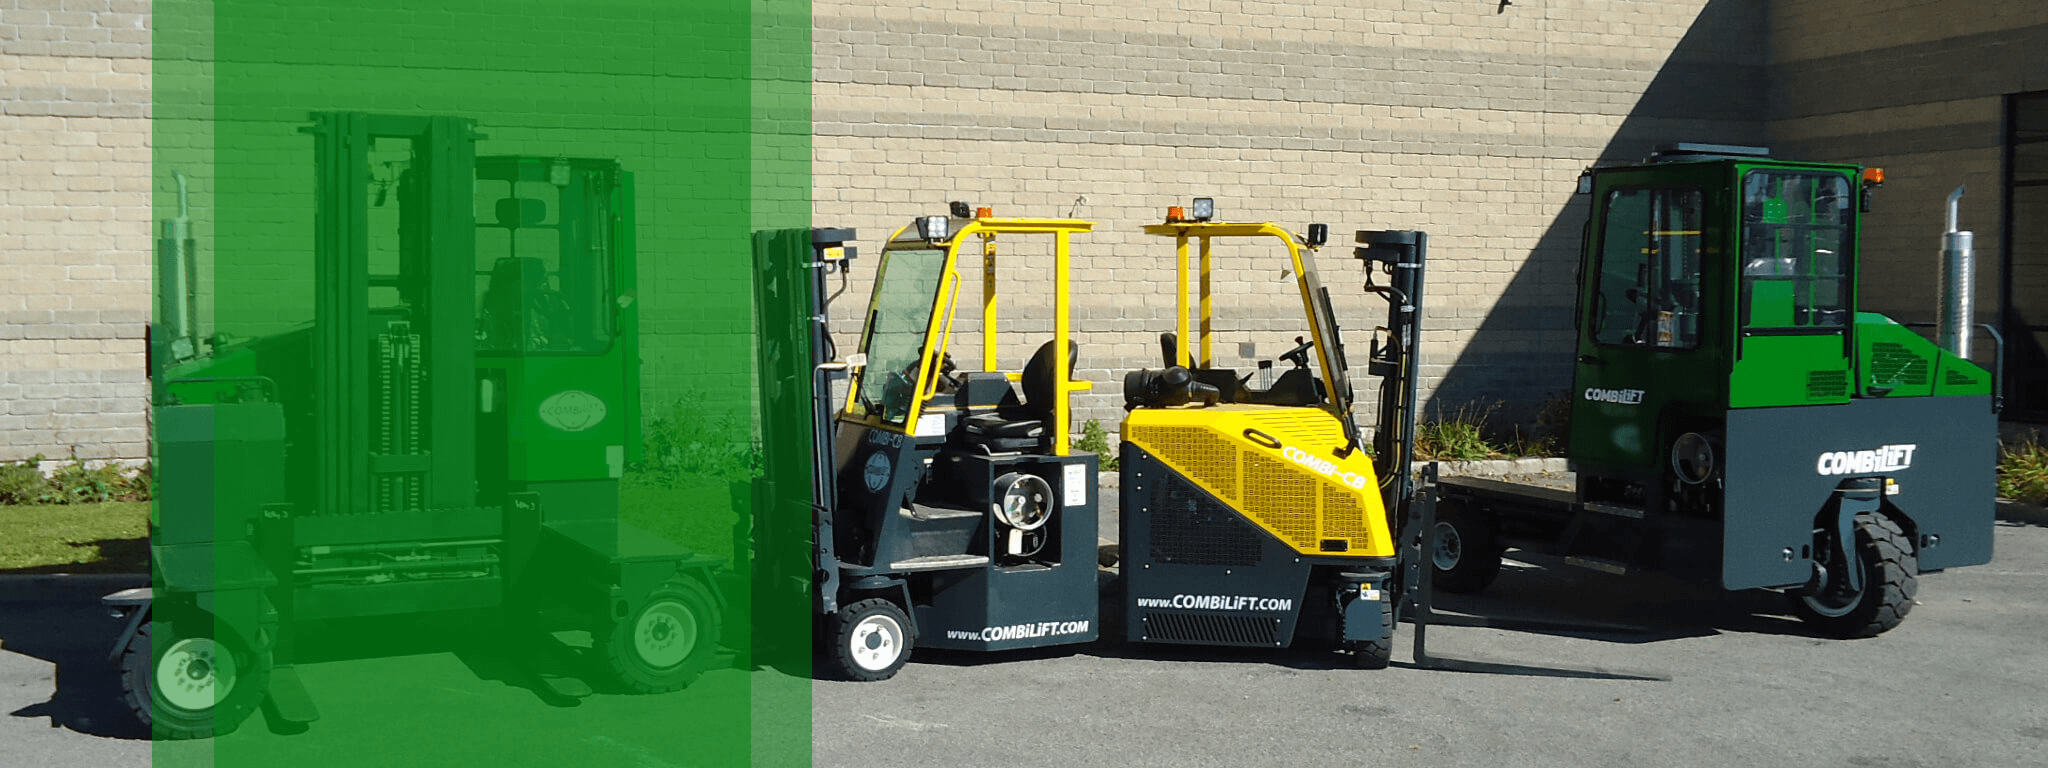 Combilift forklifts for sale